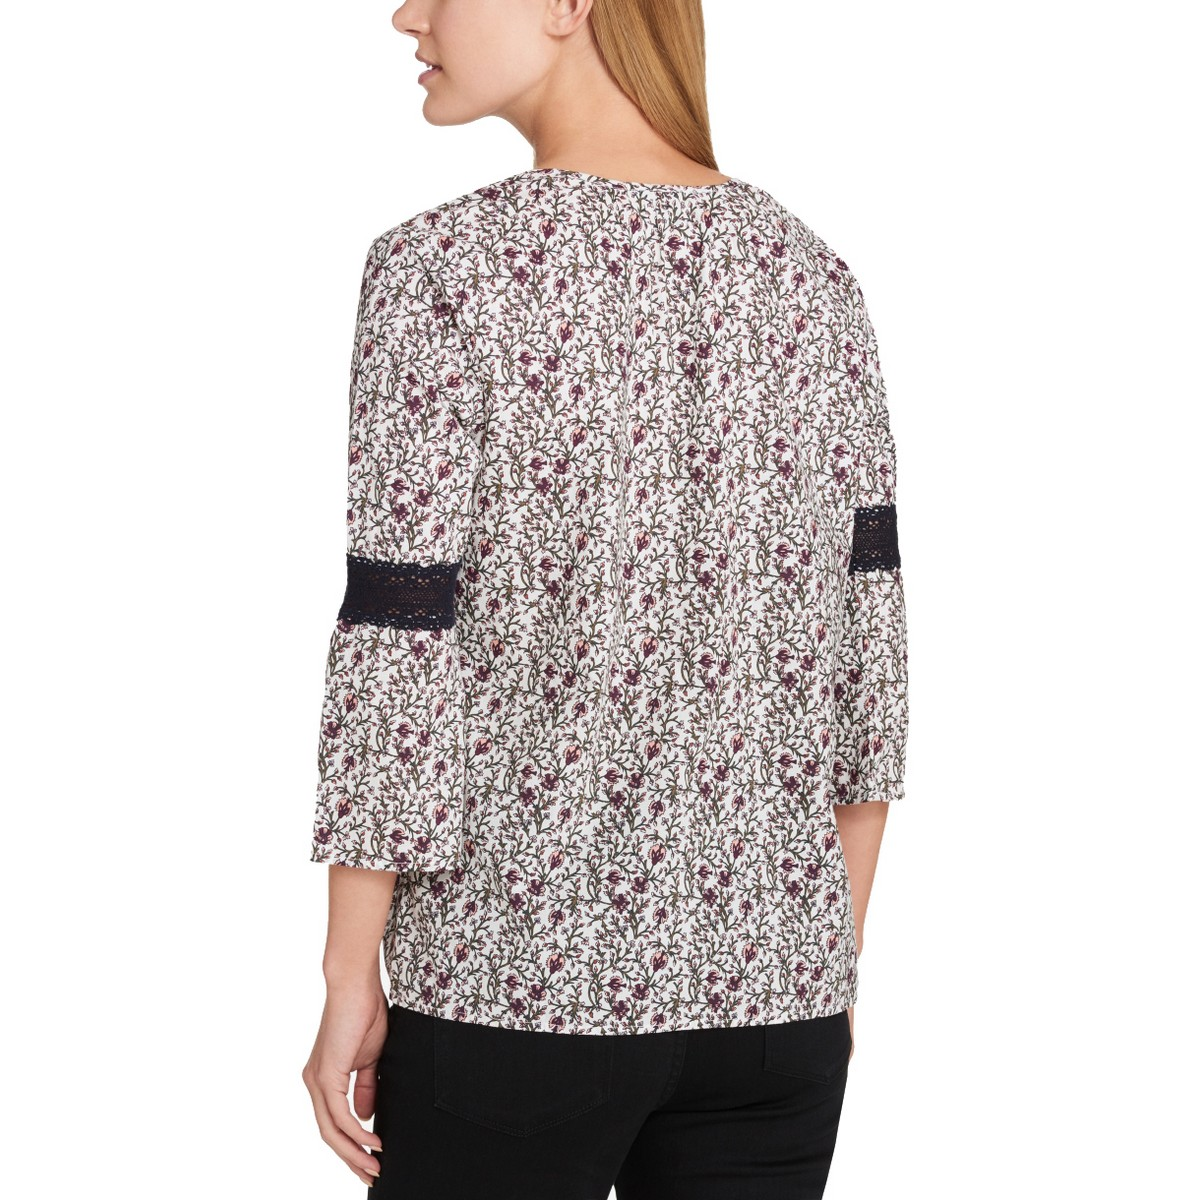 TOMMY-HILFIGER-NEW-Women-039-s-Lace-Detail-Printed-Blouse-Shirt-Top-TEDO thumbnail 5